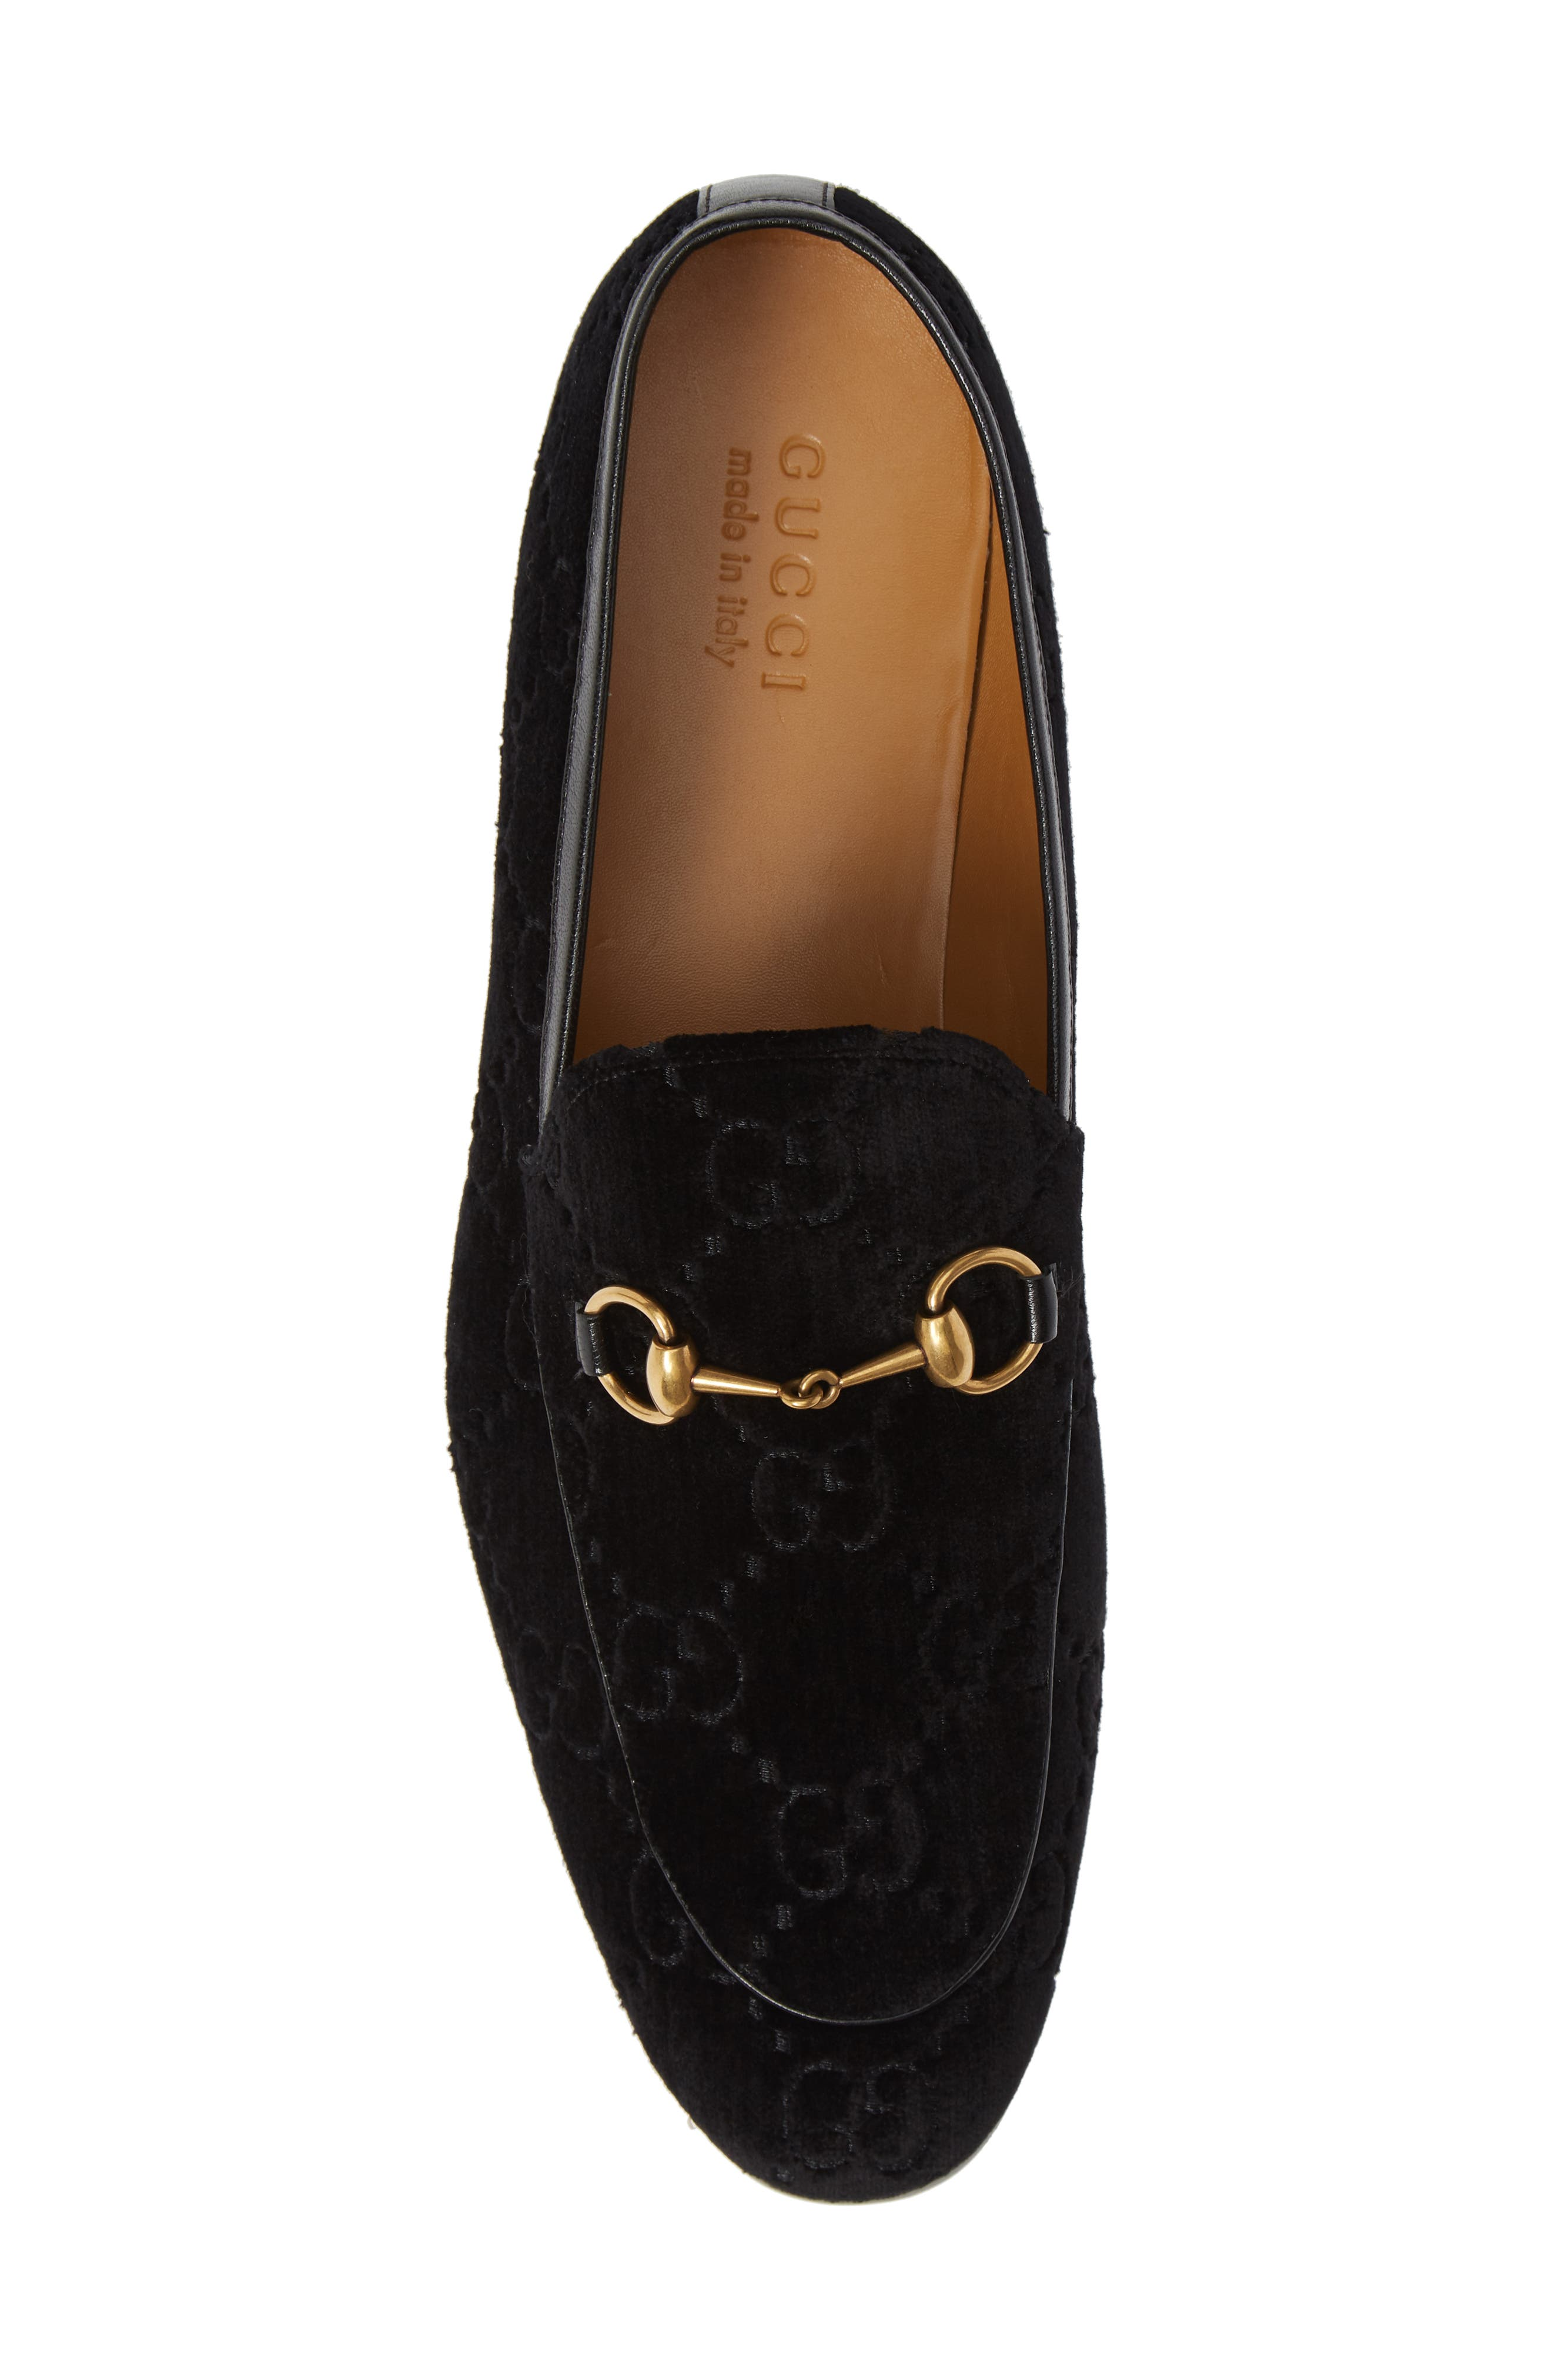 GUCCI, Jordaan GG Velvet Loafer, Alternate thumbnail 5, color, NERO/ NERO